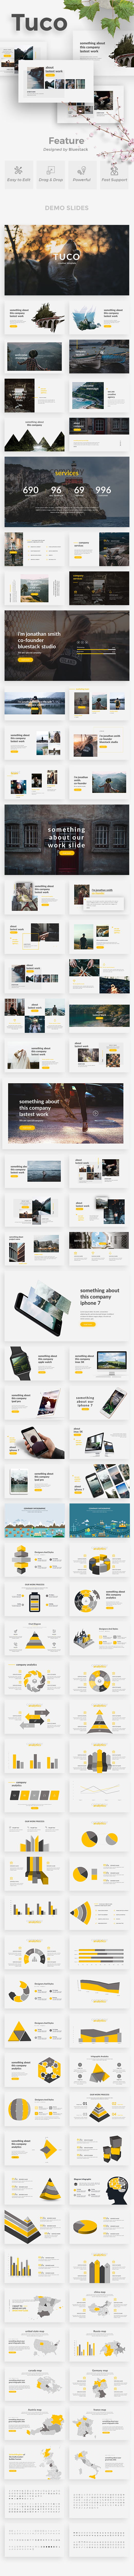 Tuco Creative Powerpoint Template - Creative PowerPoint Templates